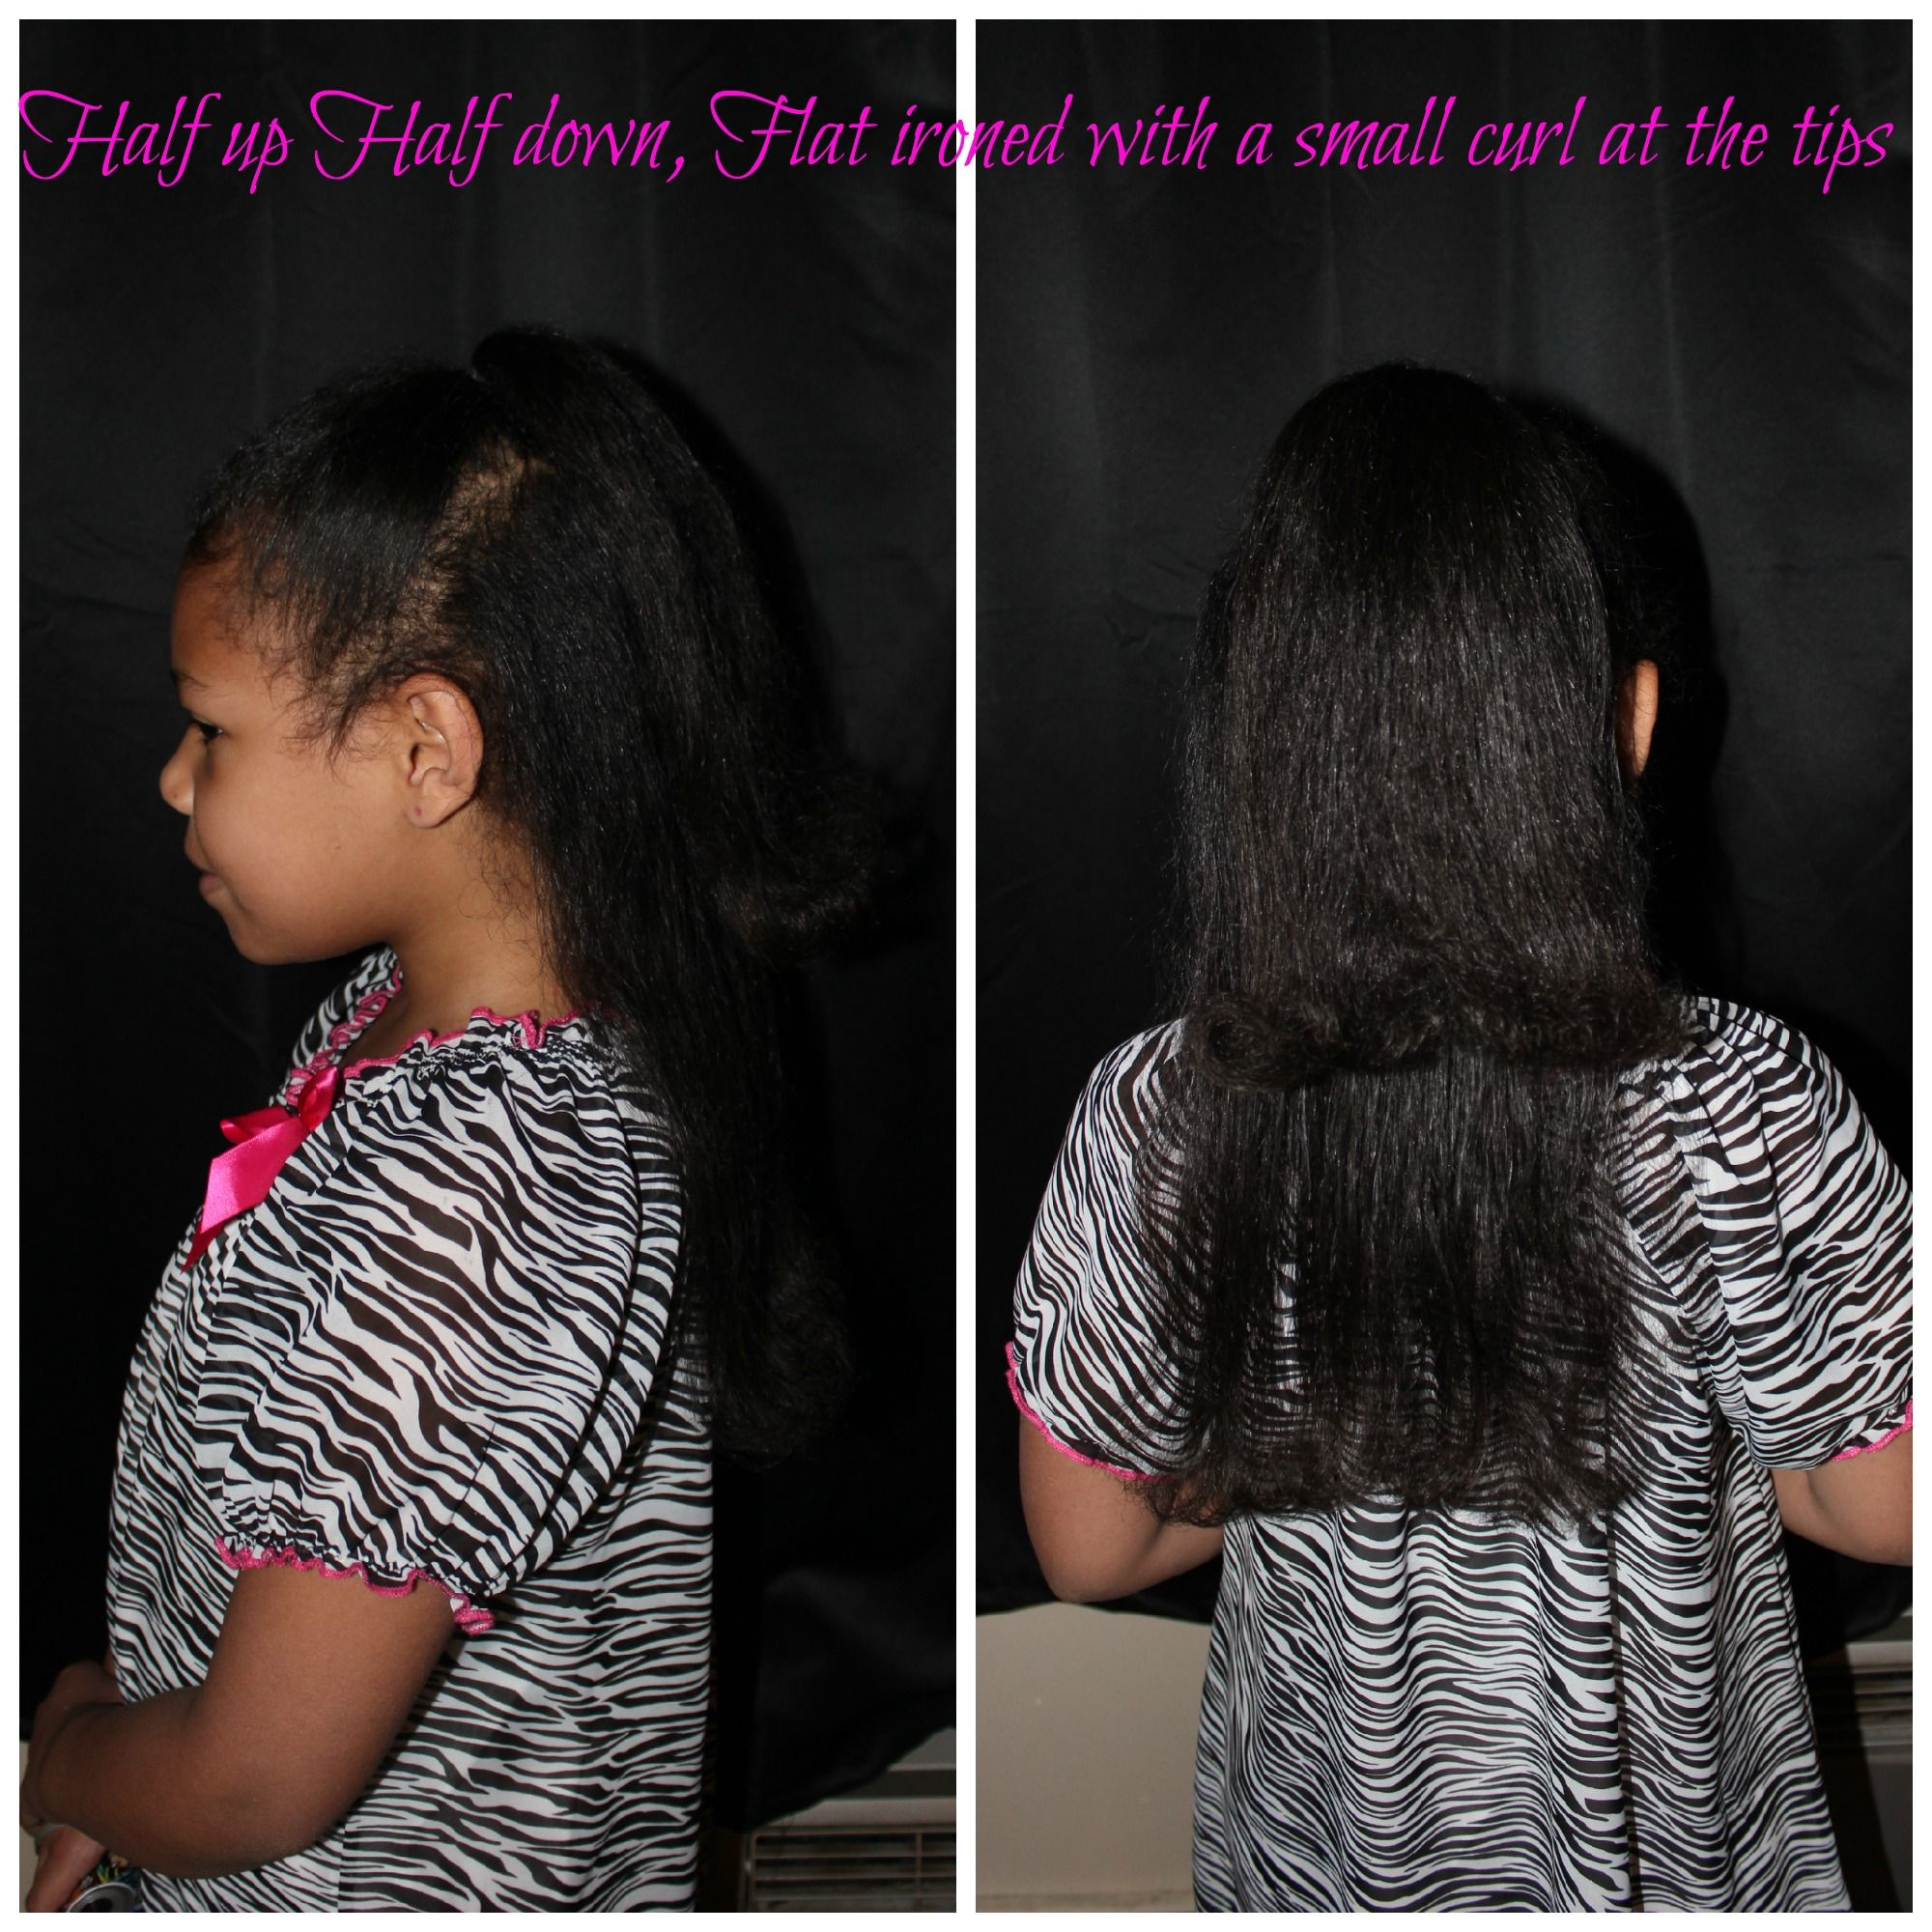 Flat Ironed Hair, With A Half Up Half Down Pony Tail With A Small